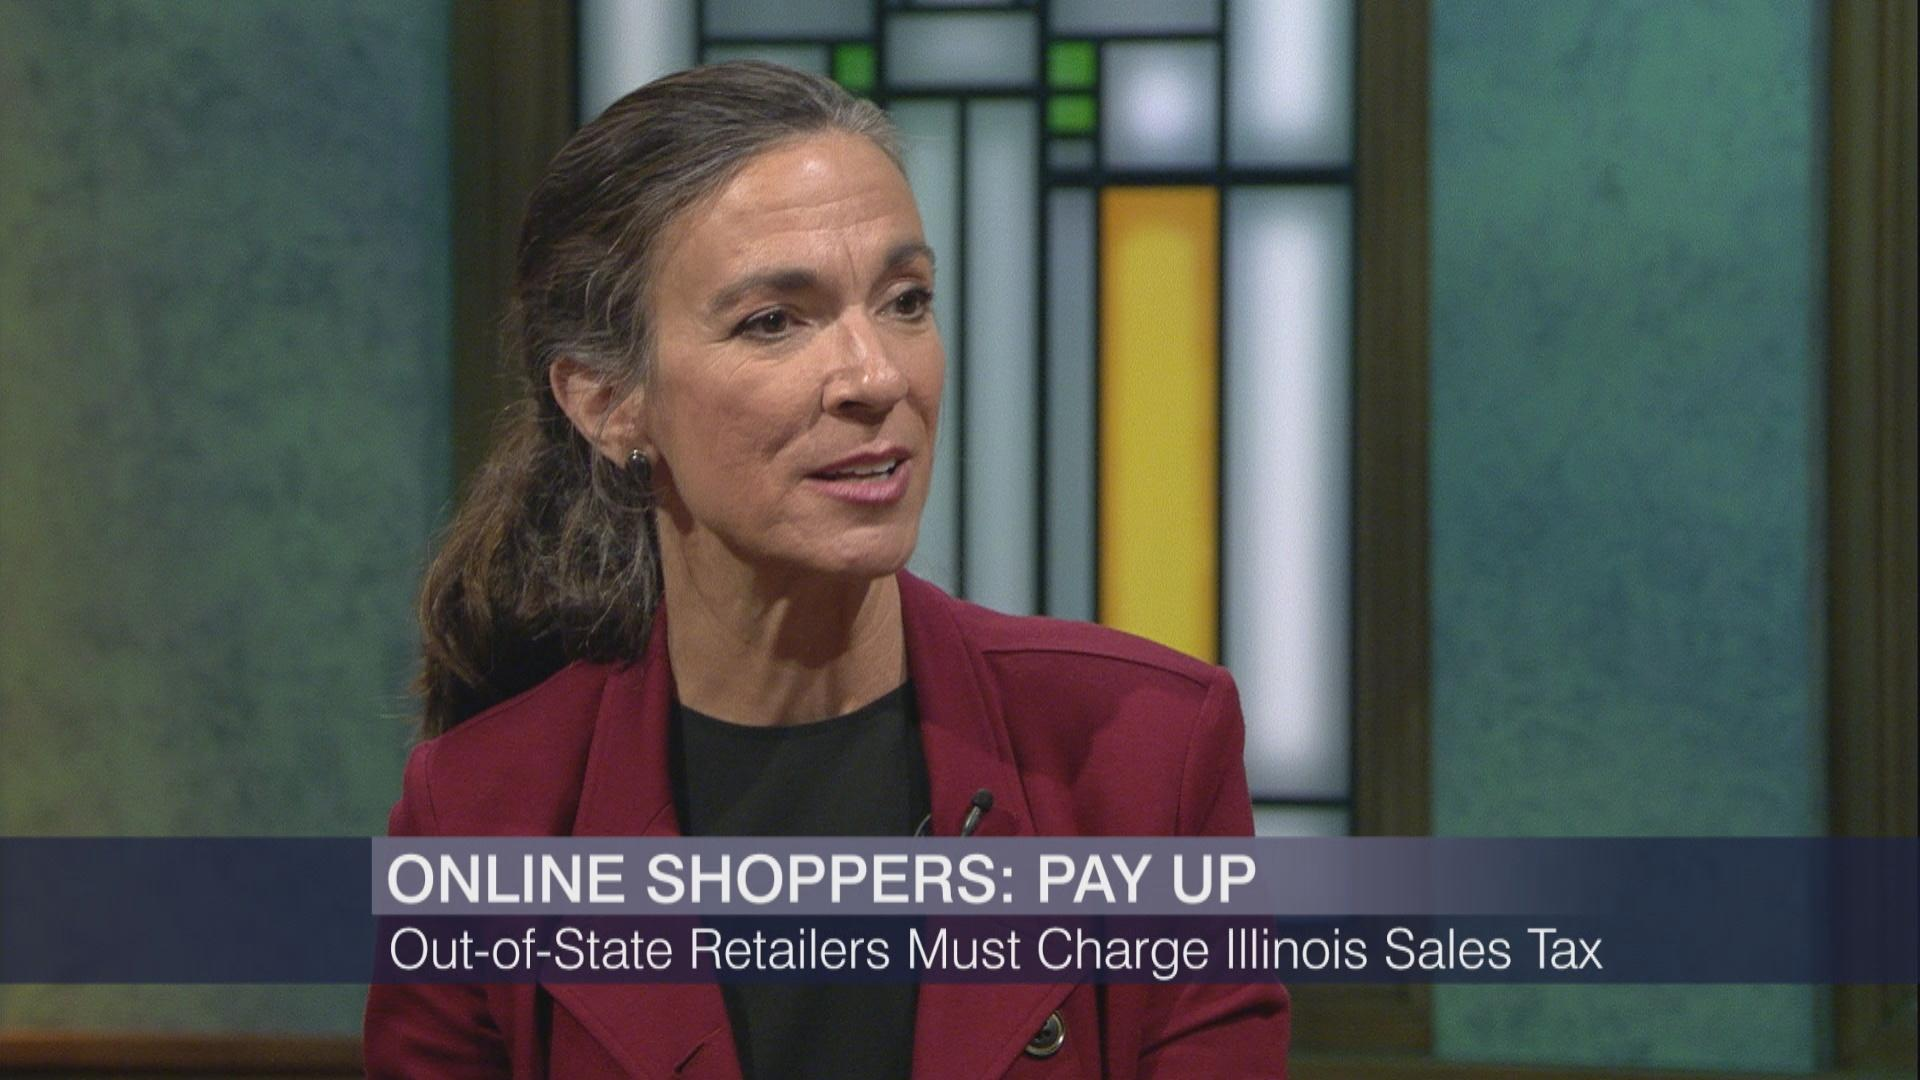 Shopping Online? Out-of-State Retailers Charging Sales Tax